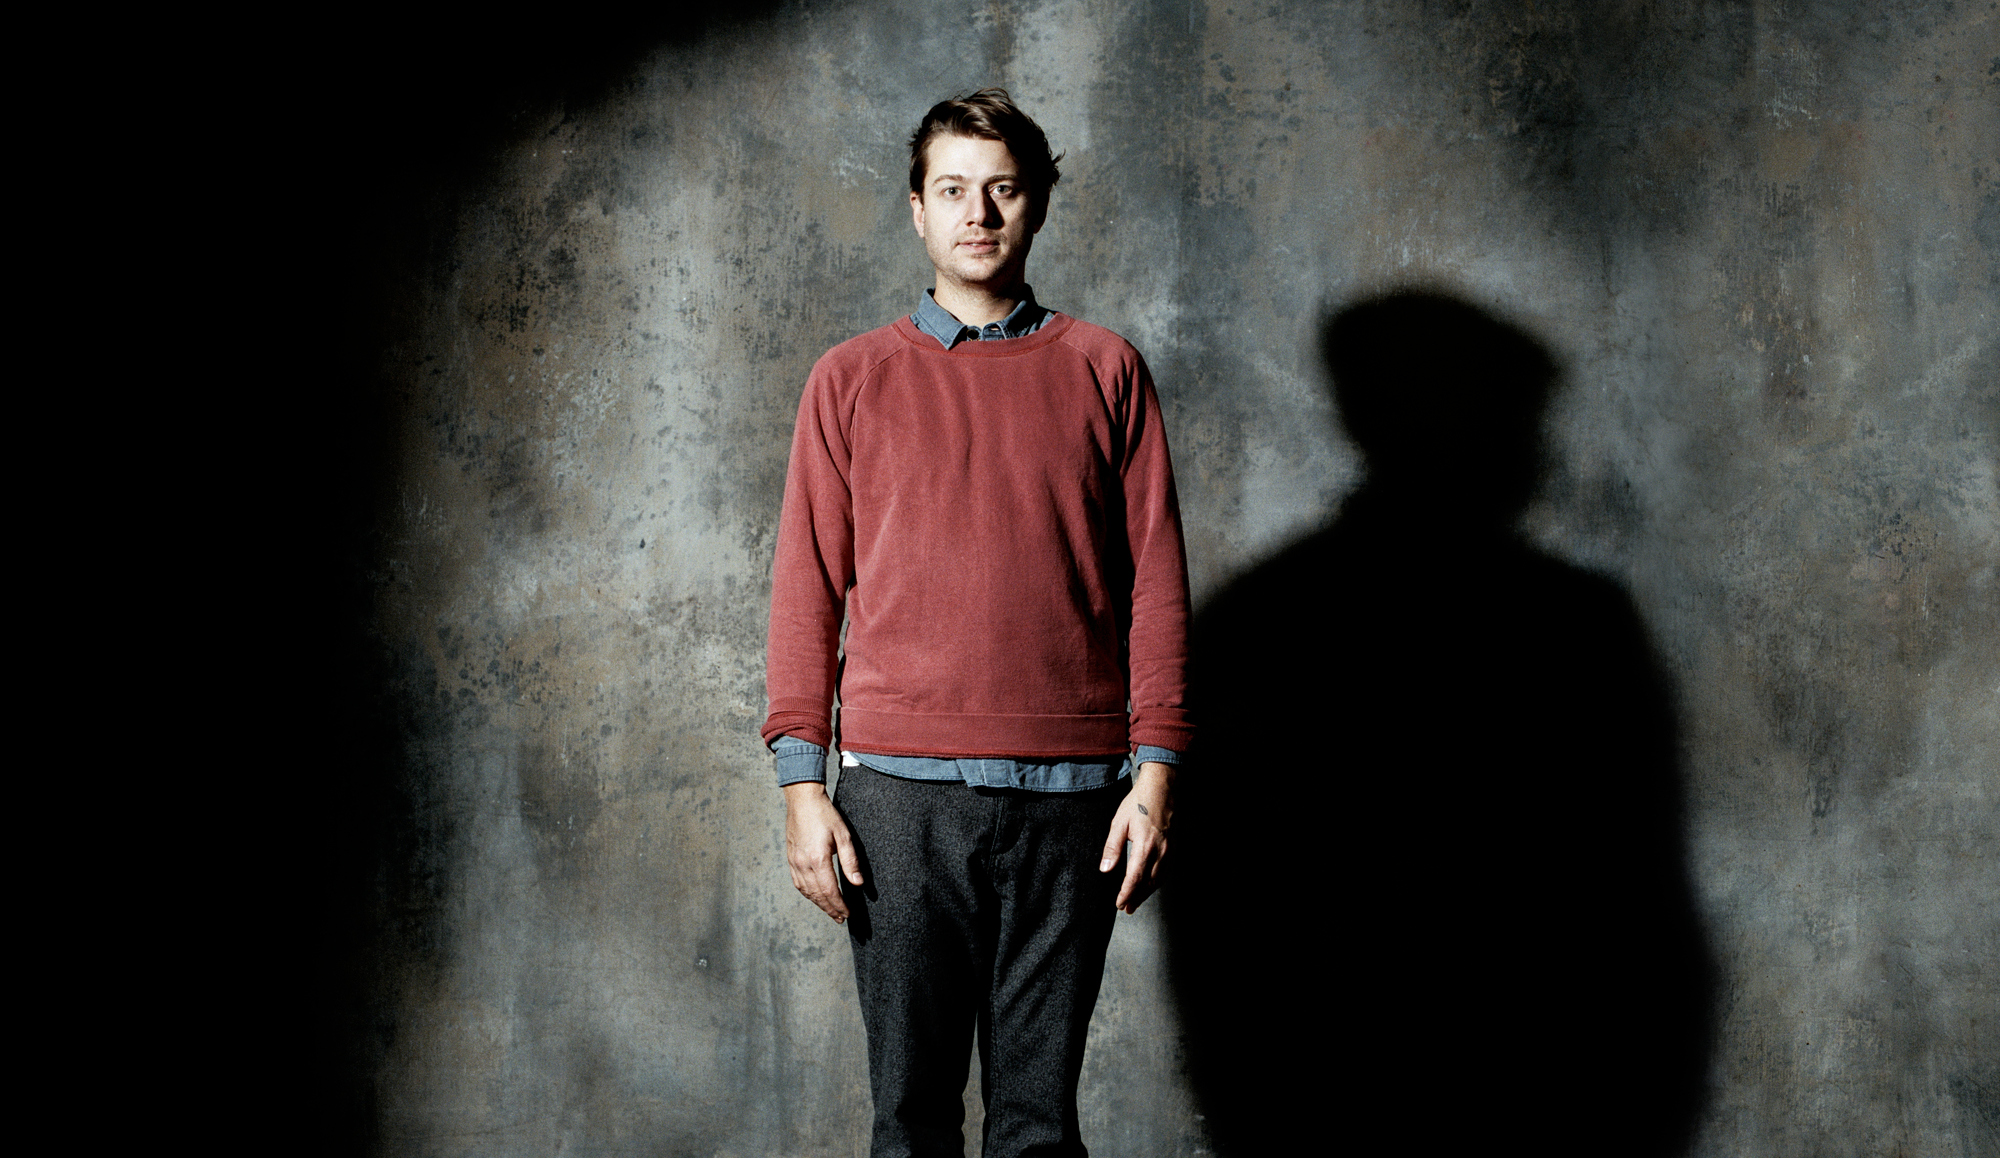 Nordic Gig Guide: Axel Boman & Dream Wife